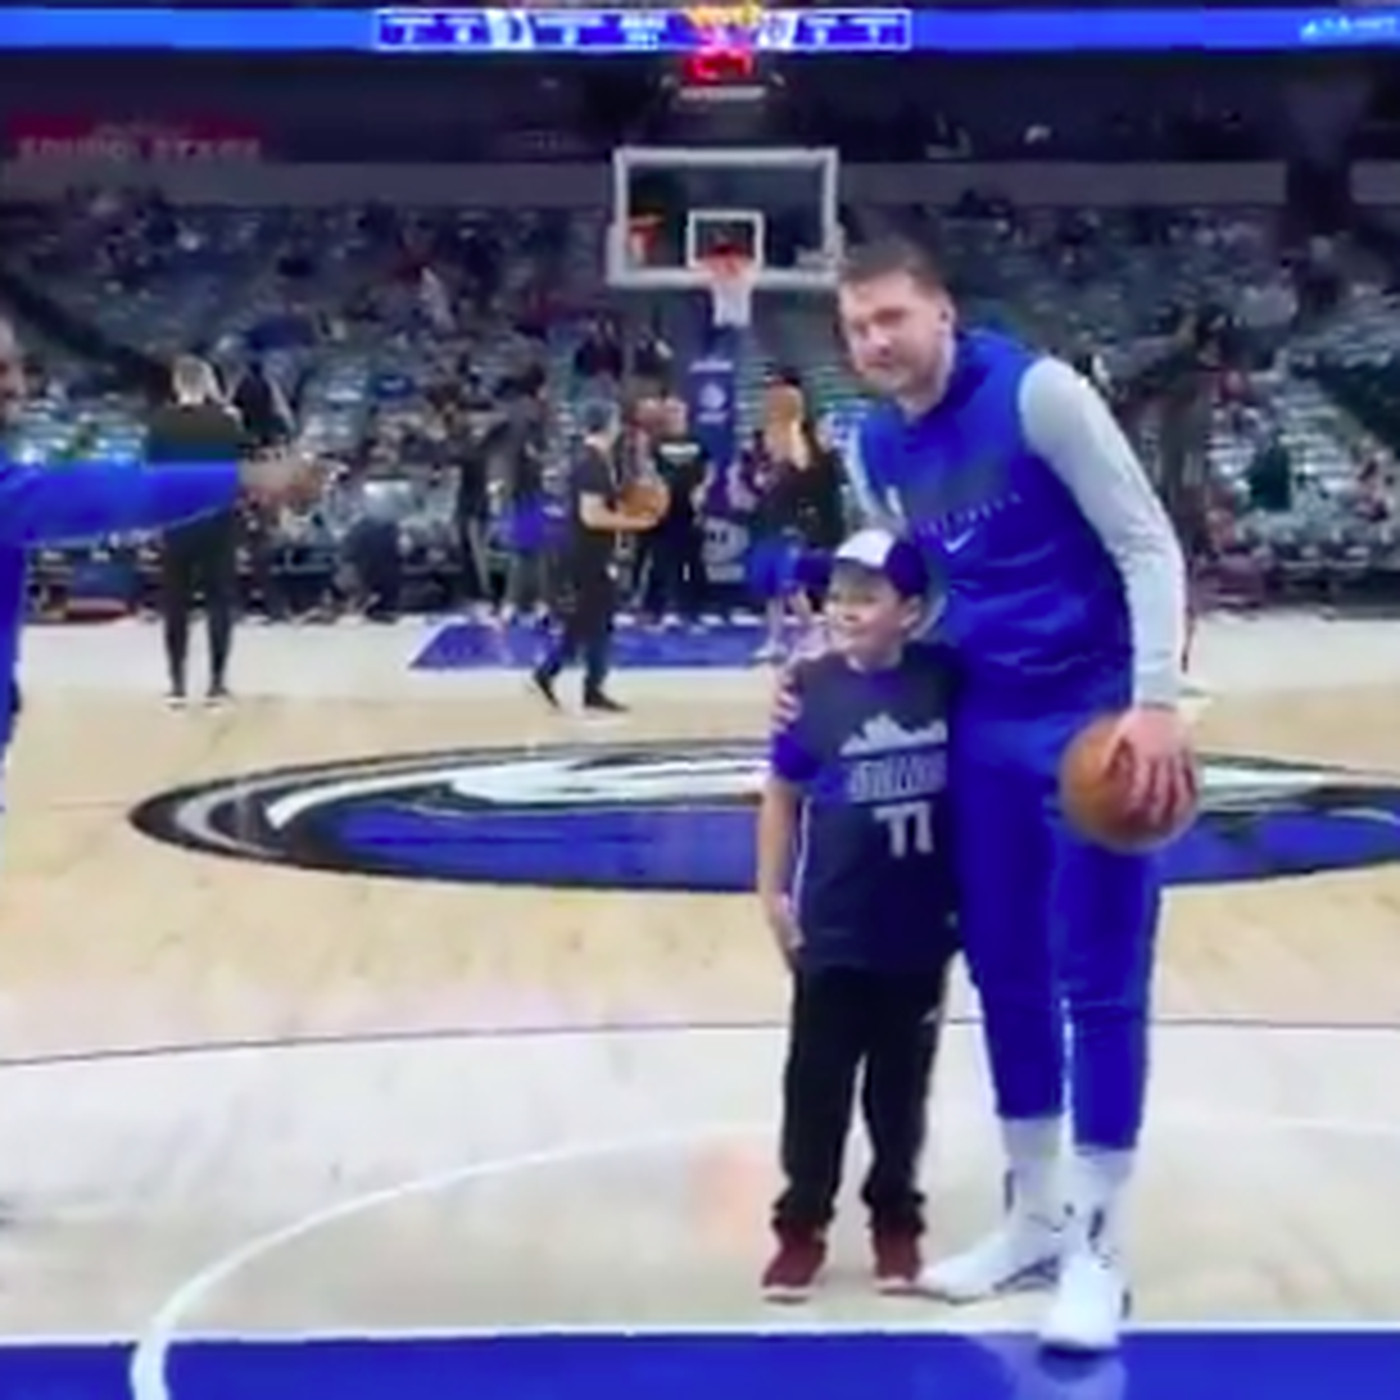 Luka Doncic To Give Autographed Shoes to A Young Fan